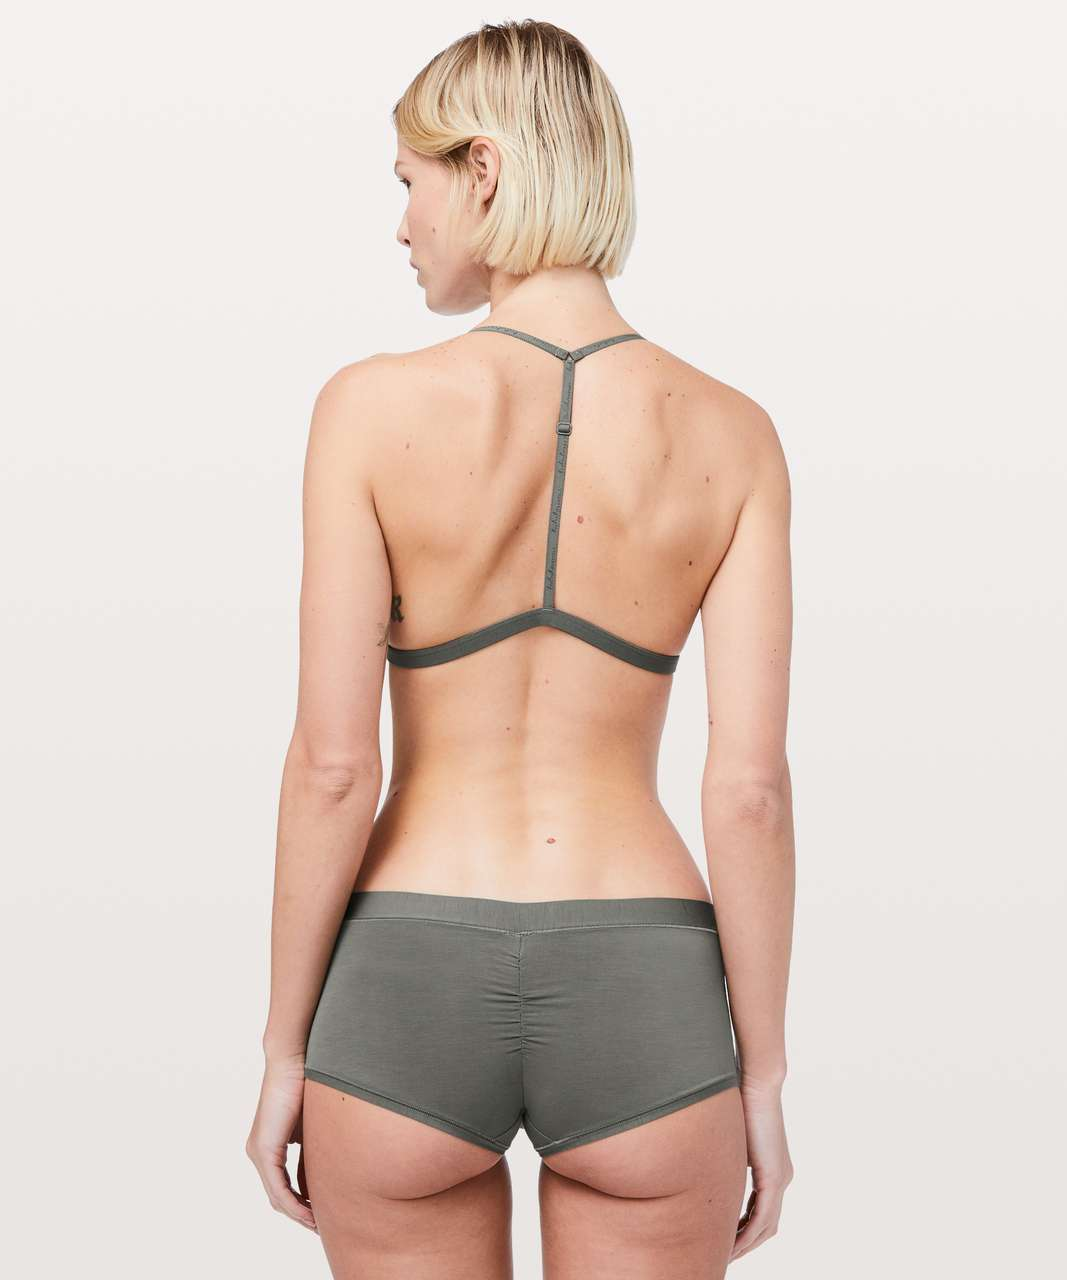 Lululemon Simply There Triangle Bralette - Grey Sage